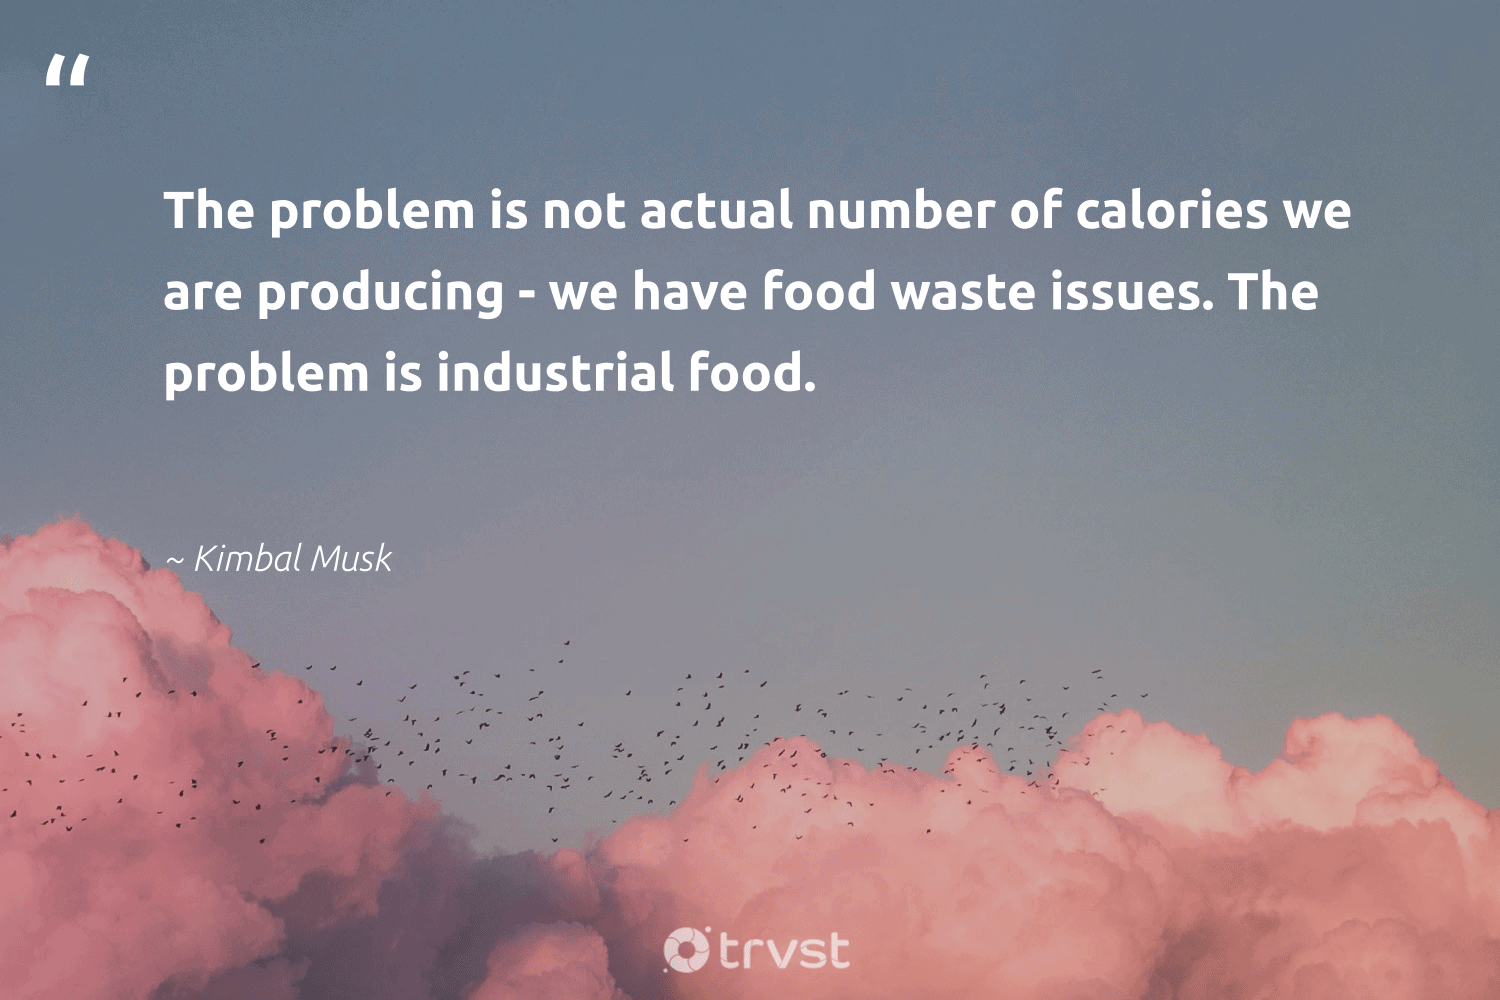 """""""The problem is not actual number of calories we are producing - we have food waste issues. The problem is industrial food.""""  - Kimbal Musk #trvst #quotes #foodwaste #waste #food #endhunger #wastenotwantnot #greenliving #dogood #savefood #wastefree #saveourplanet"""